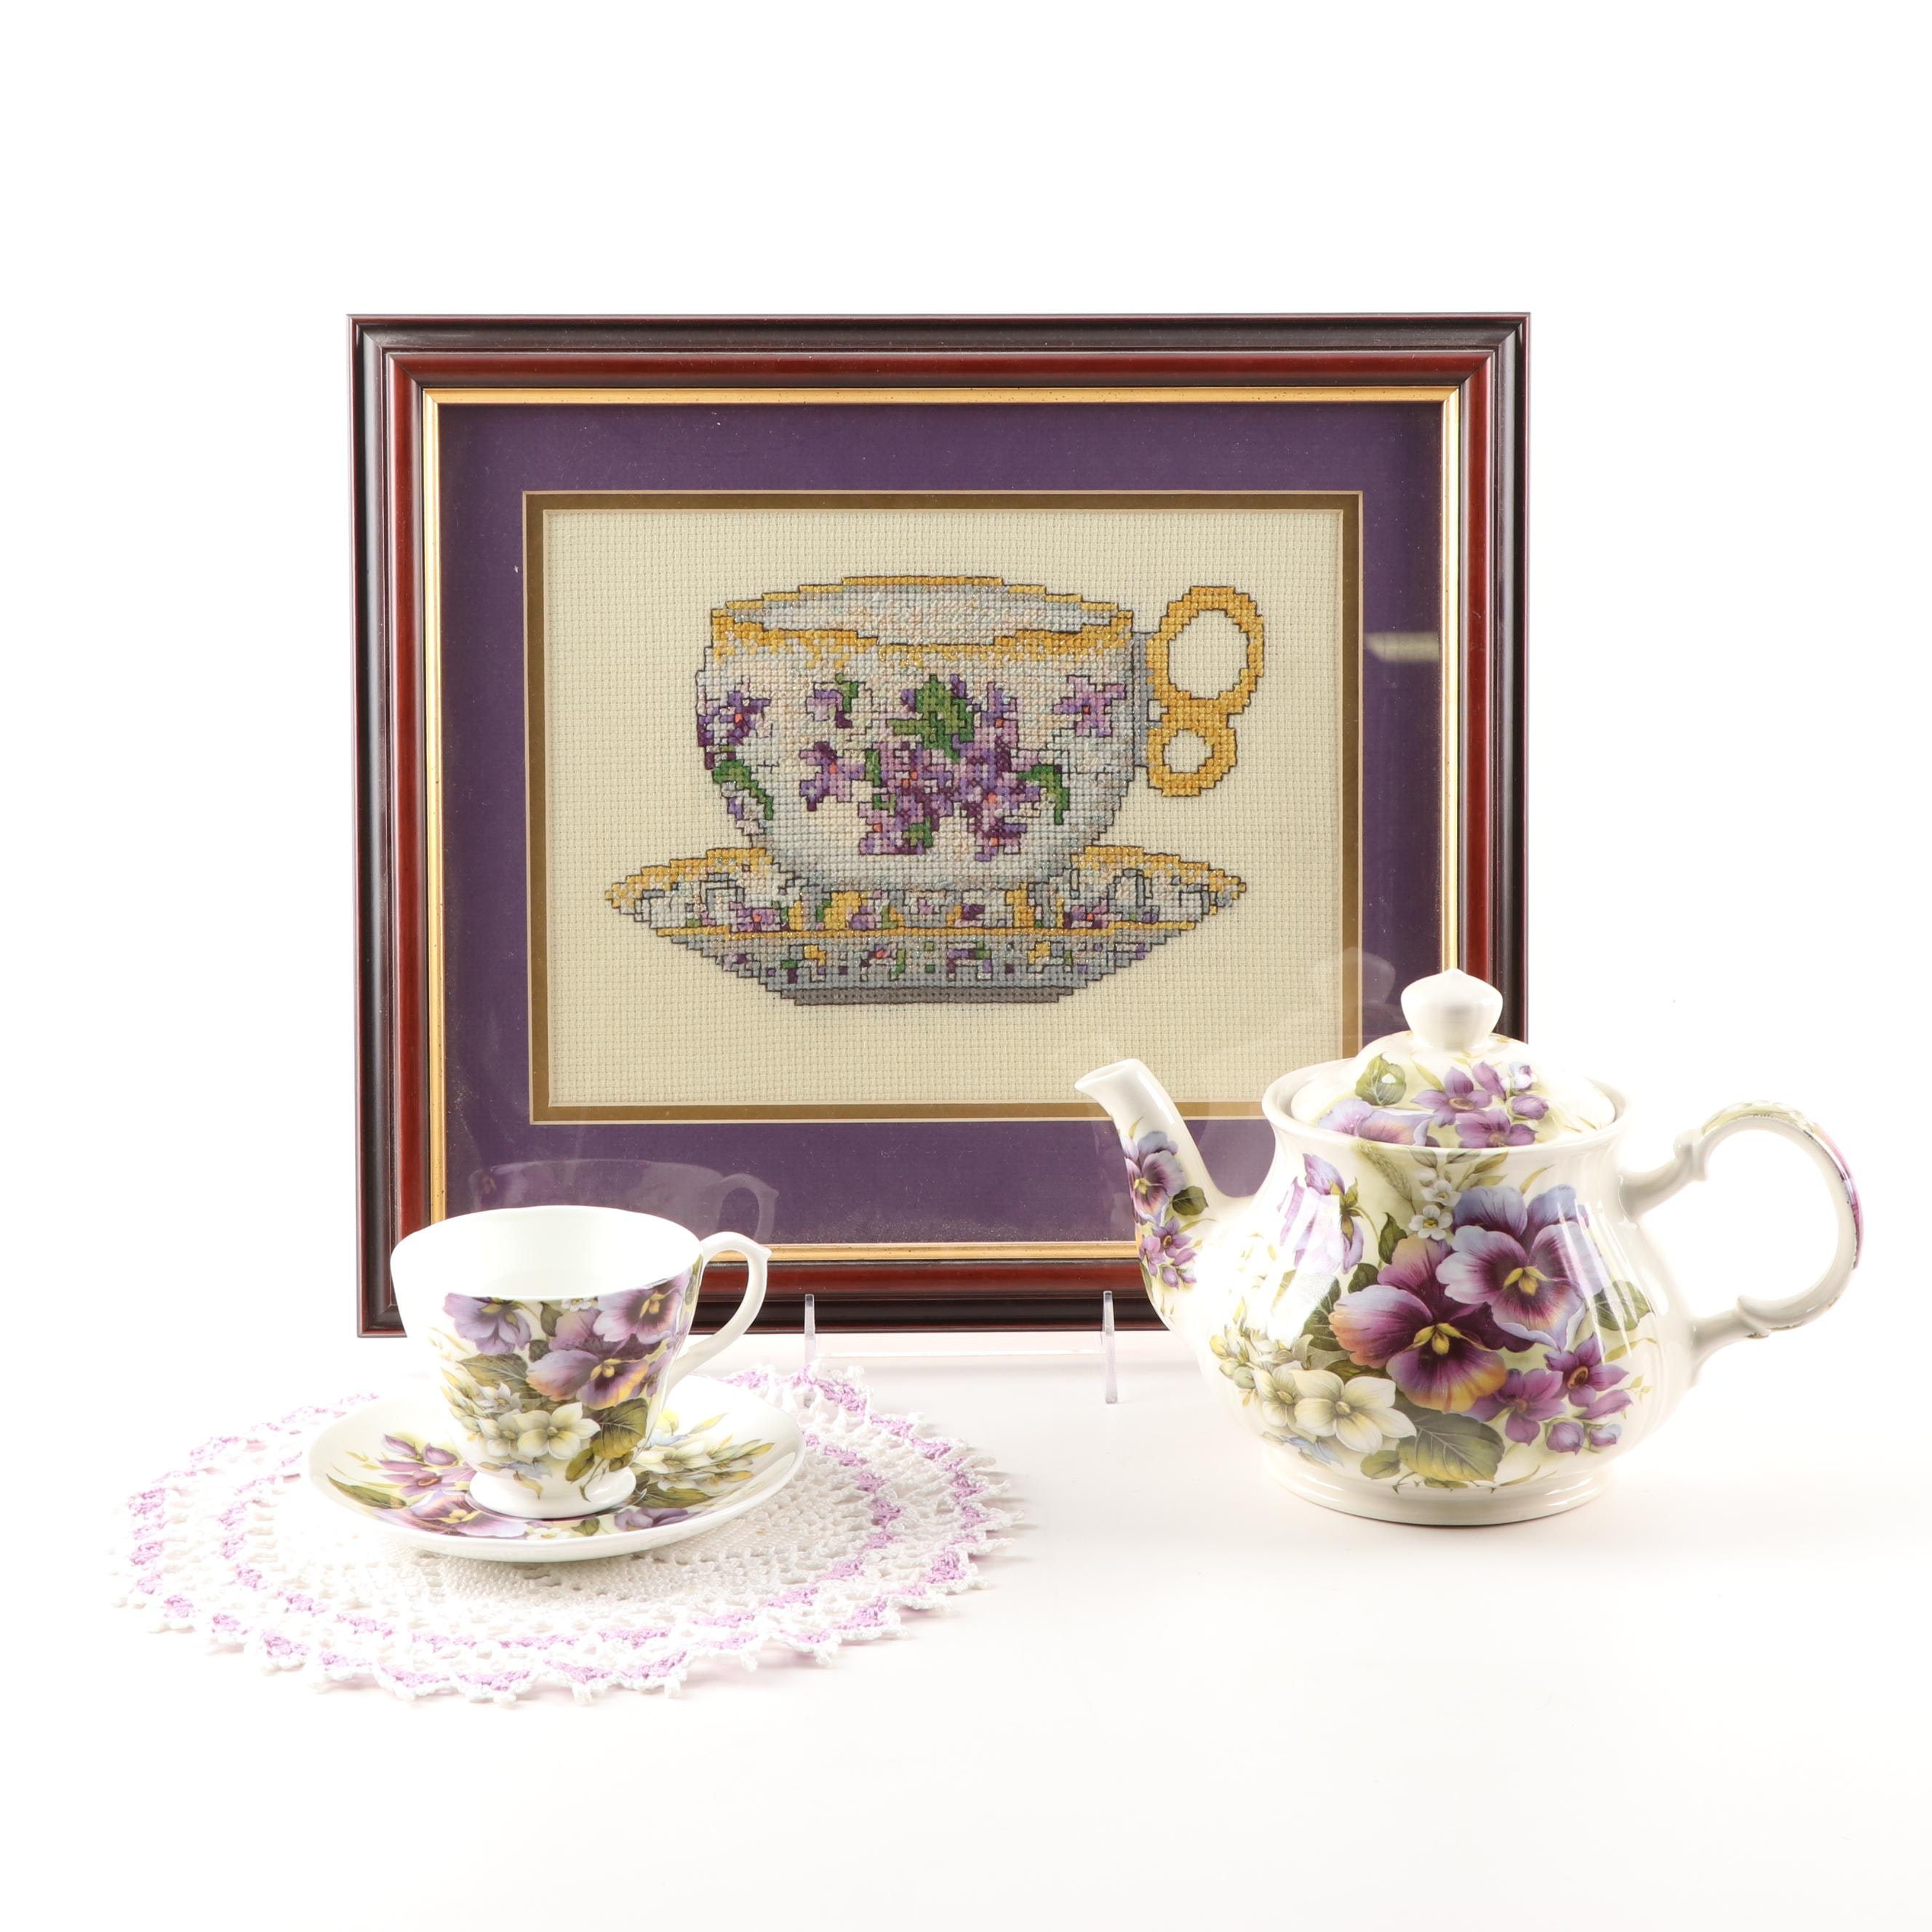 Royal Cuthbertson Teapot, Teacup, Saucer, Doily and Framed Cross Stitch